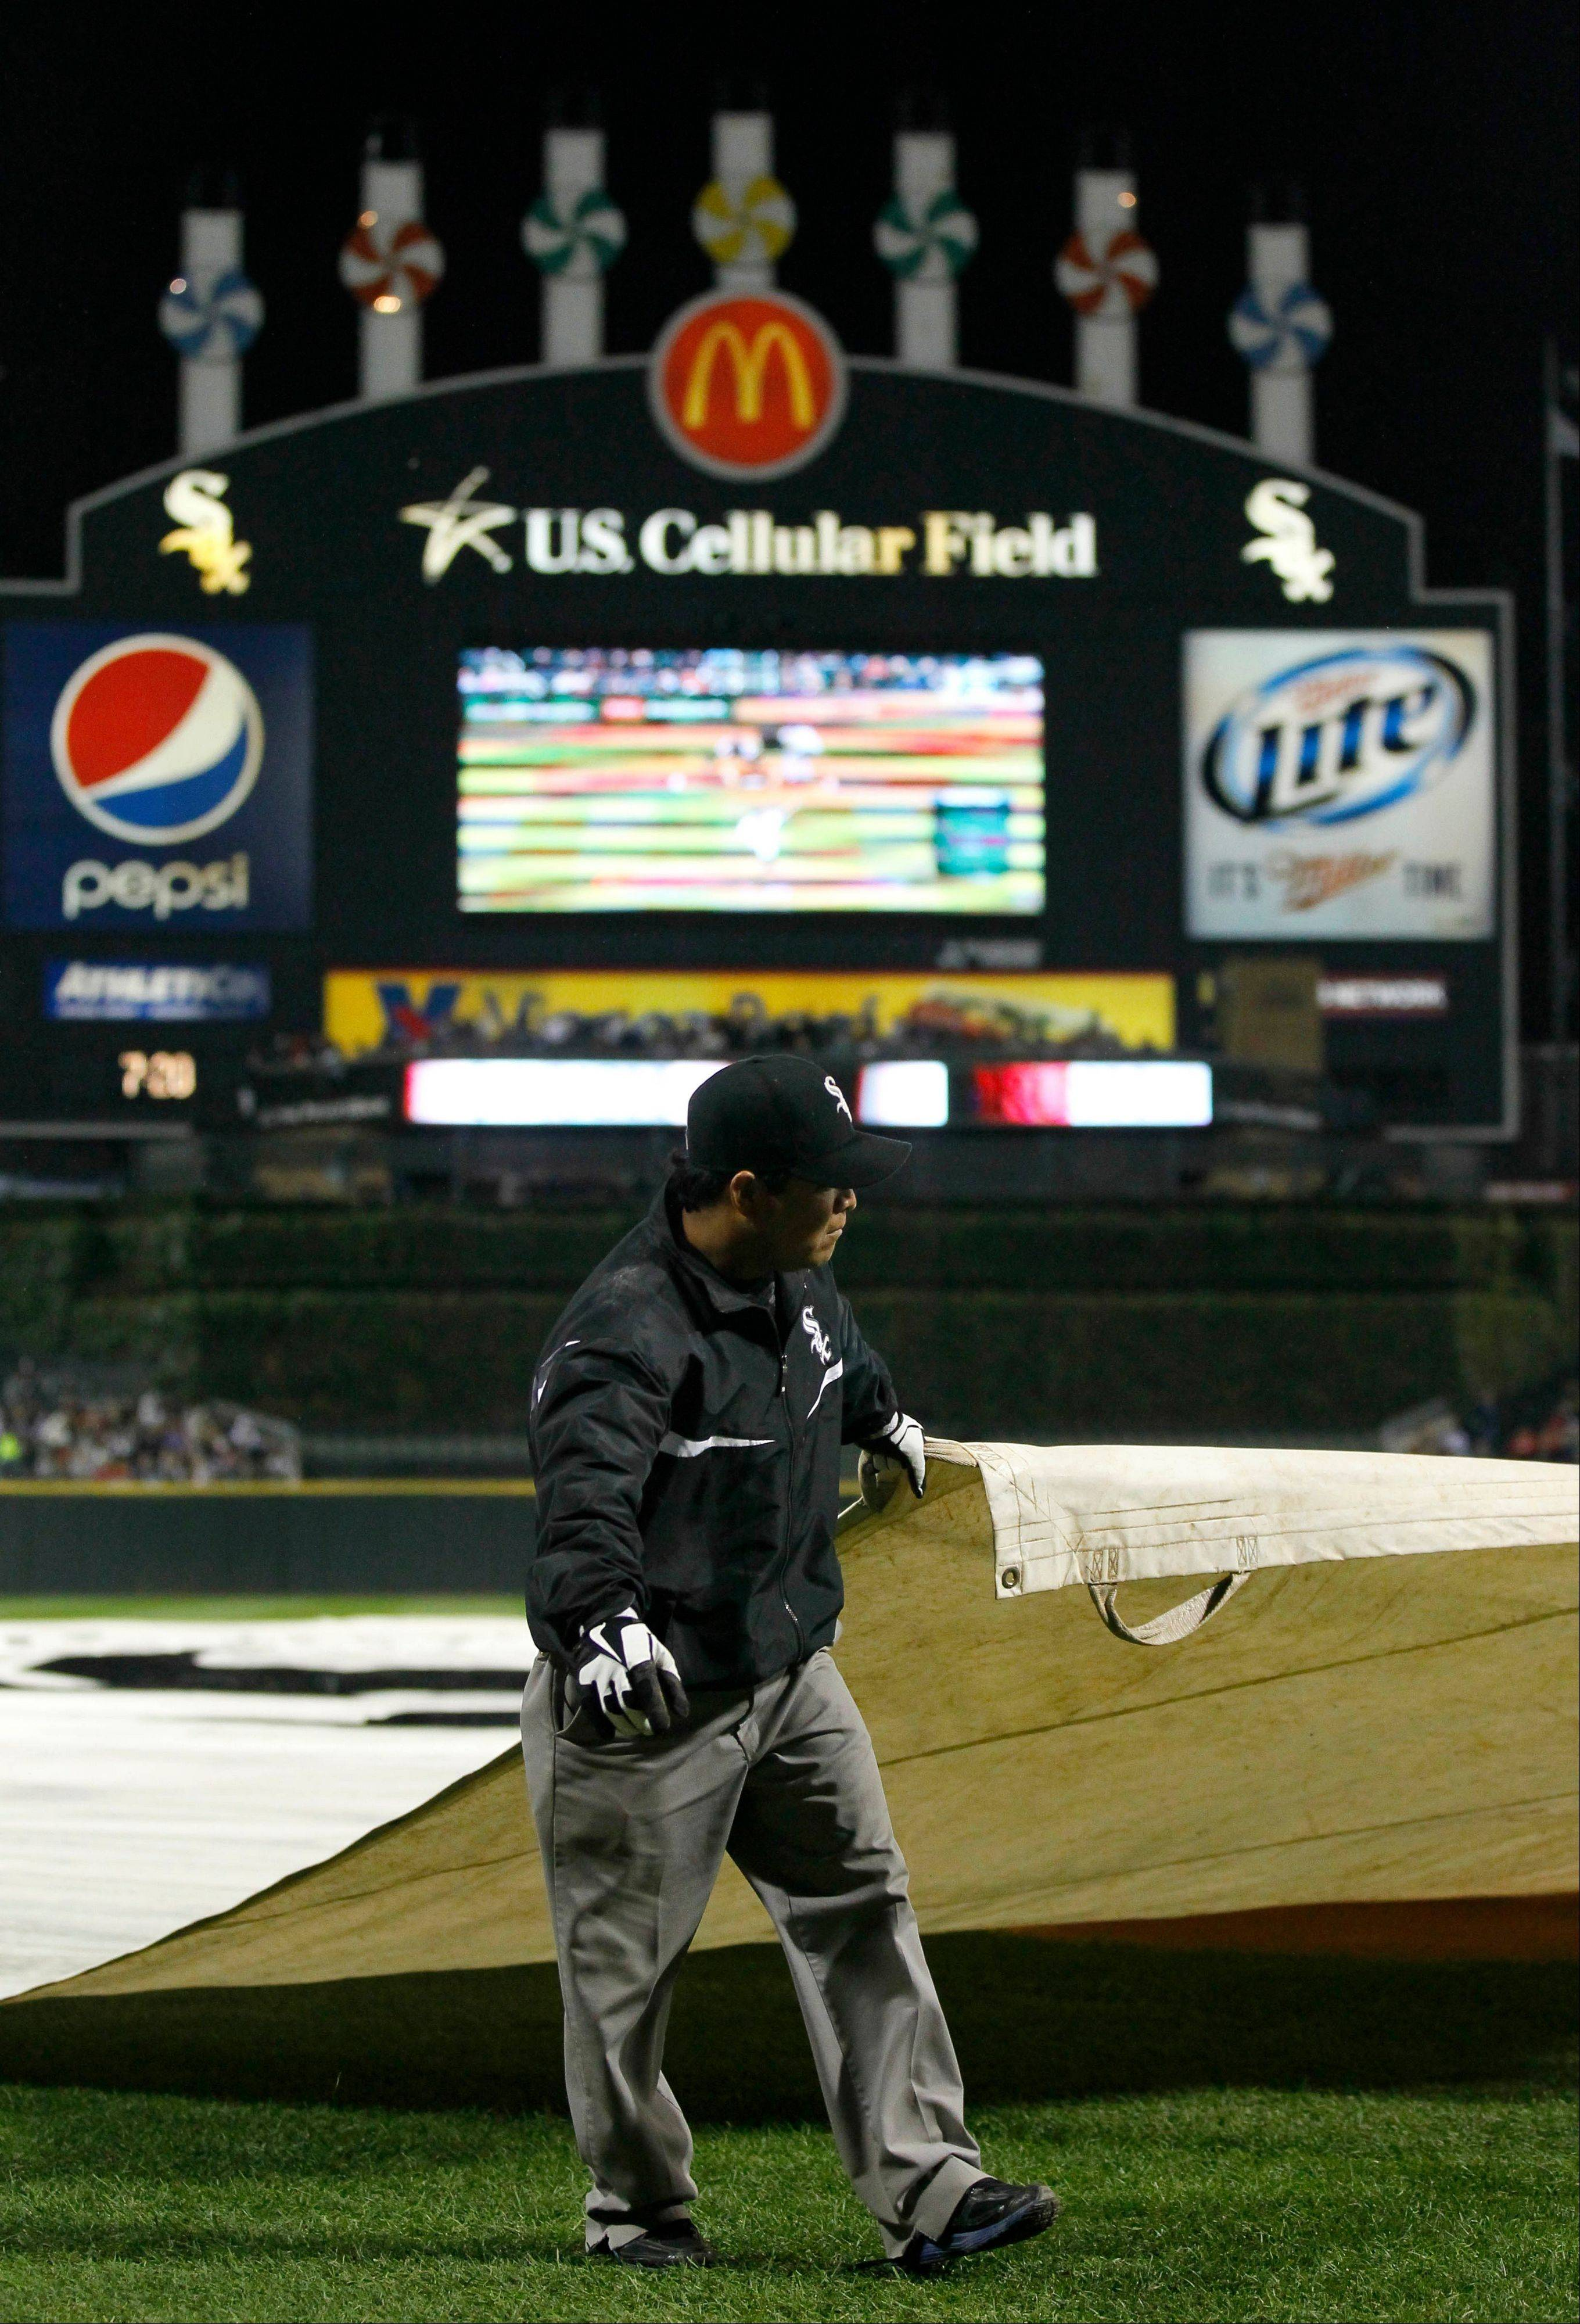 A member of the U.S. Cellular Field grounds crew helps cover the field as a rain delay postpones the start of Thursday's game the Detroit Tigers. The game eventually was rained out.